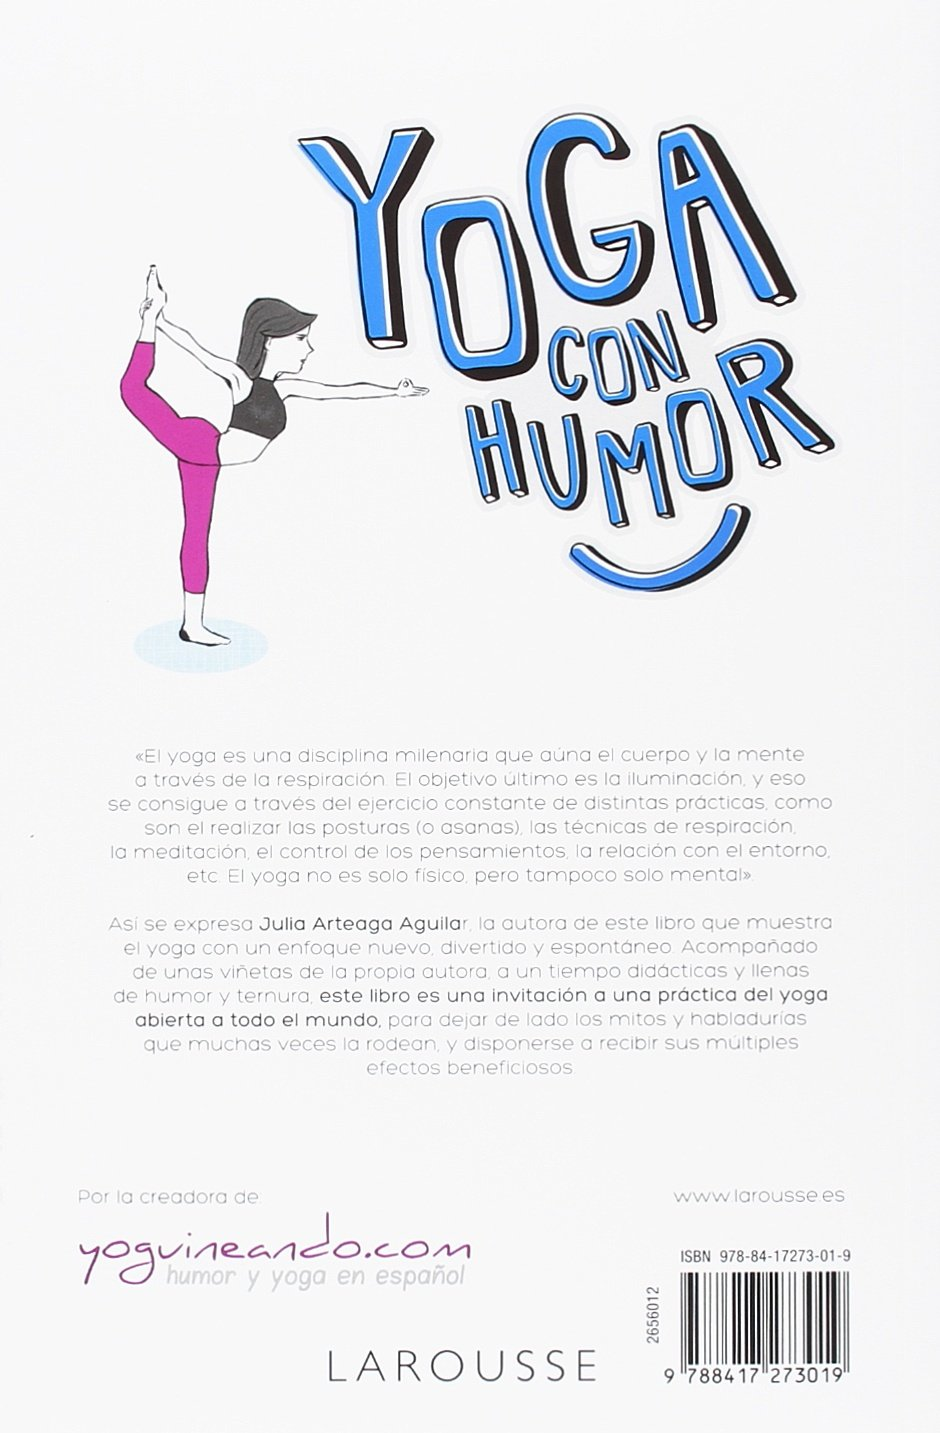 Yoga con humor: Varios: 9788417273019: Amazon.com: Books